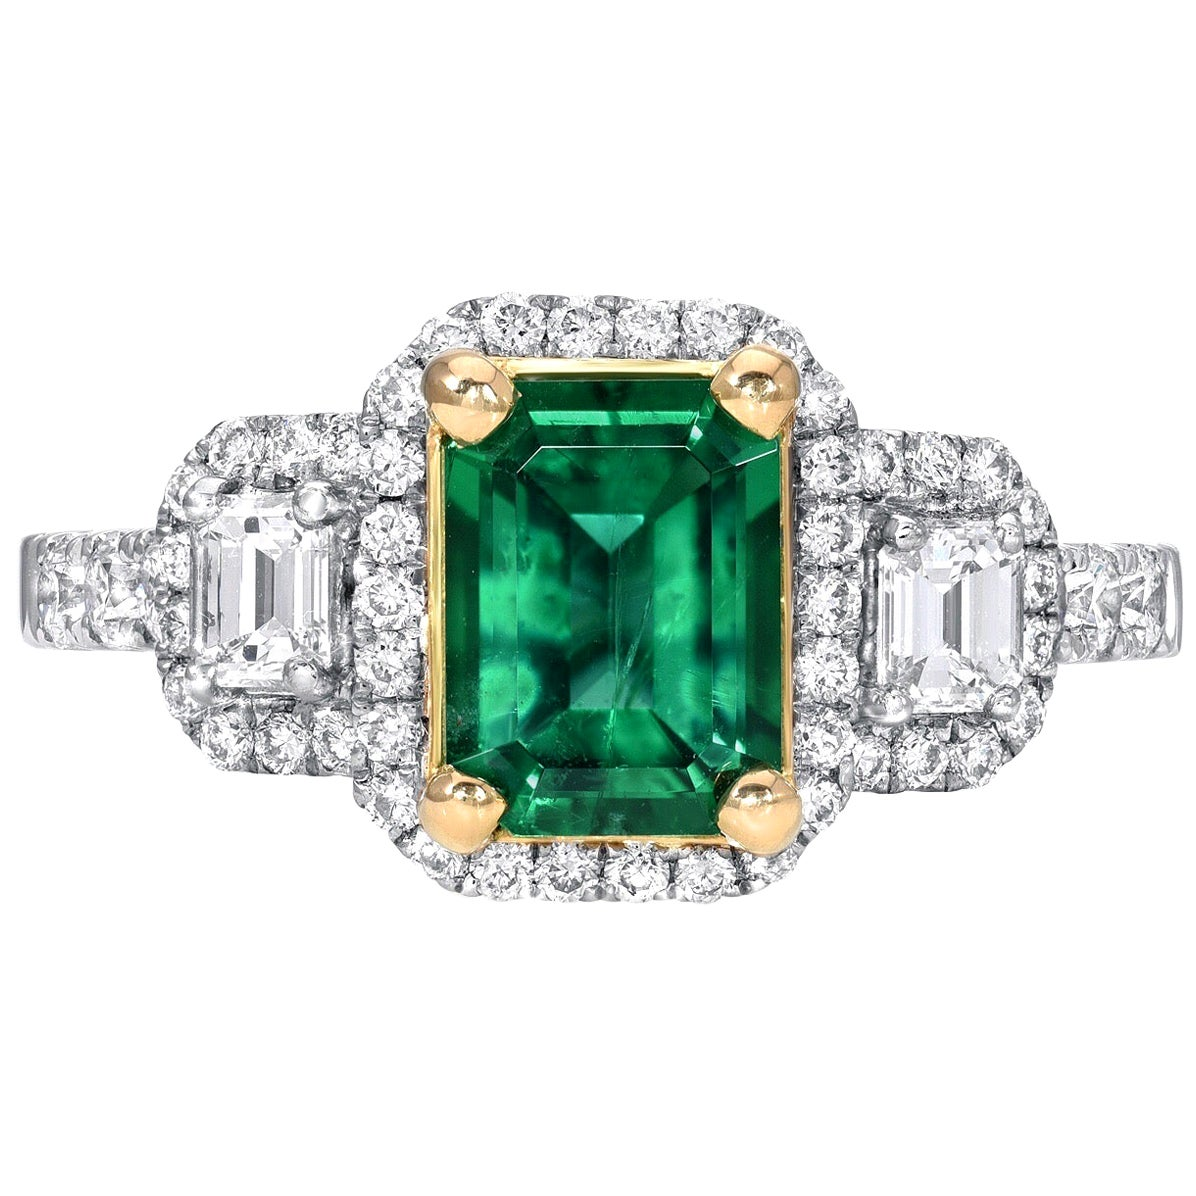 Emerald Ring 1.24 Carat Emerald Cut